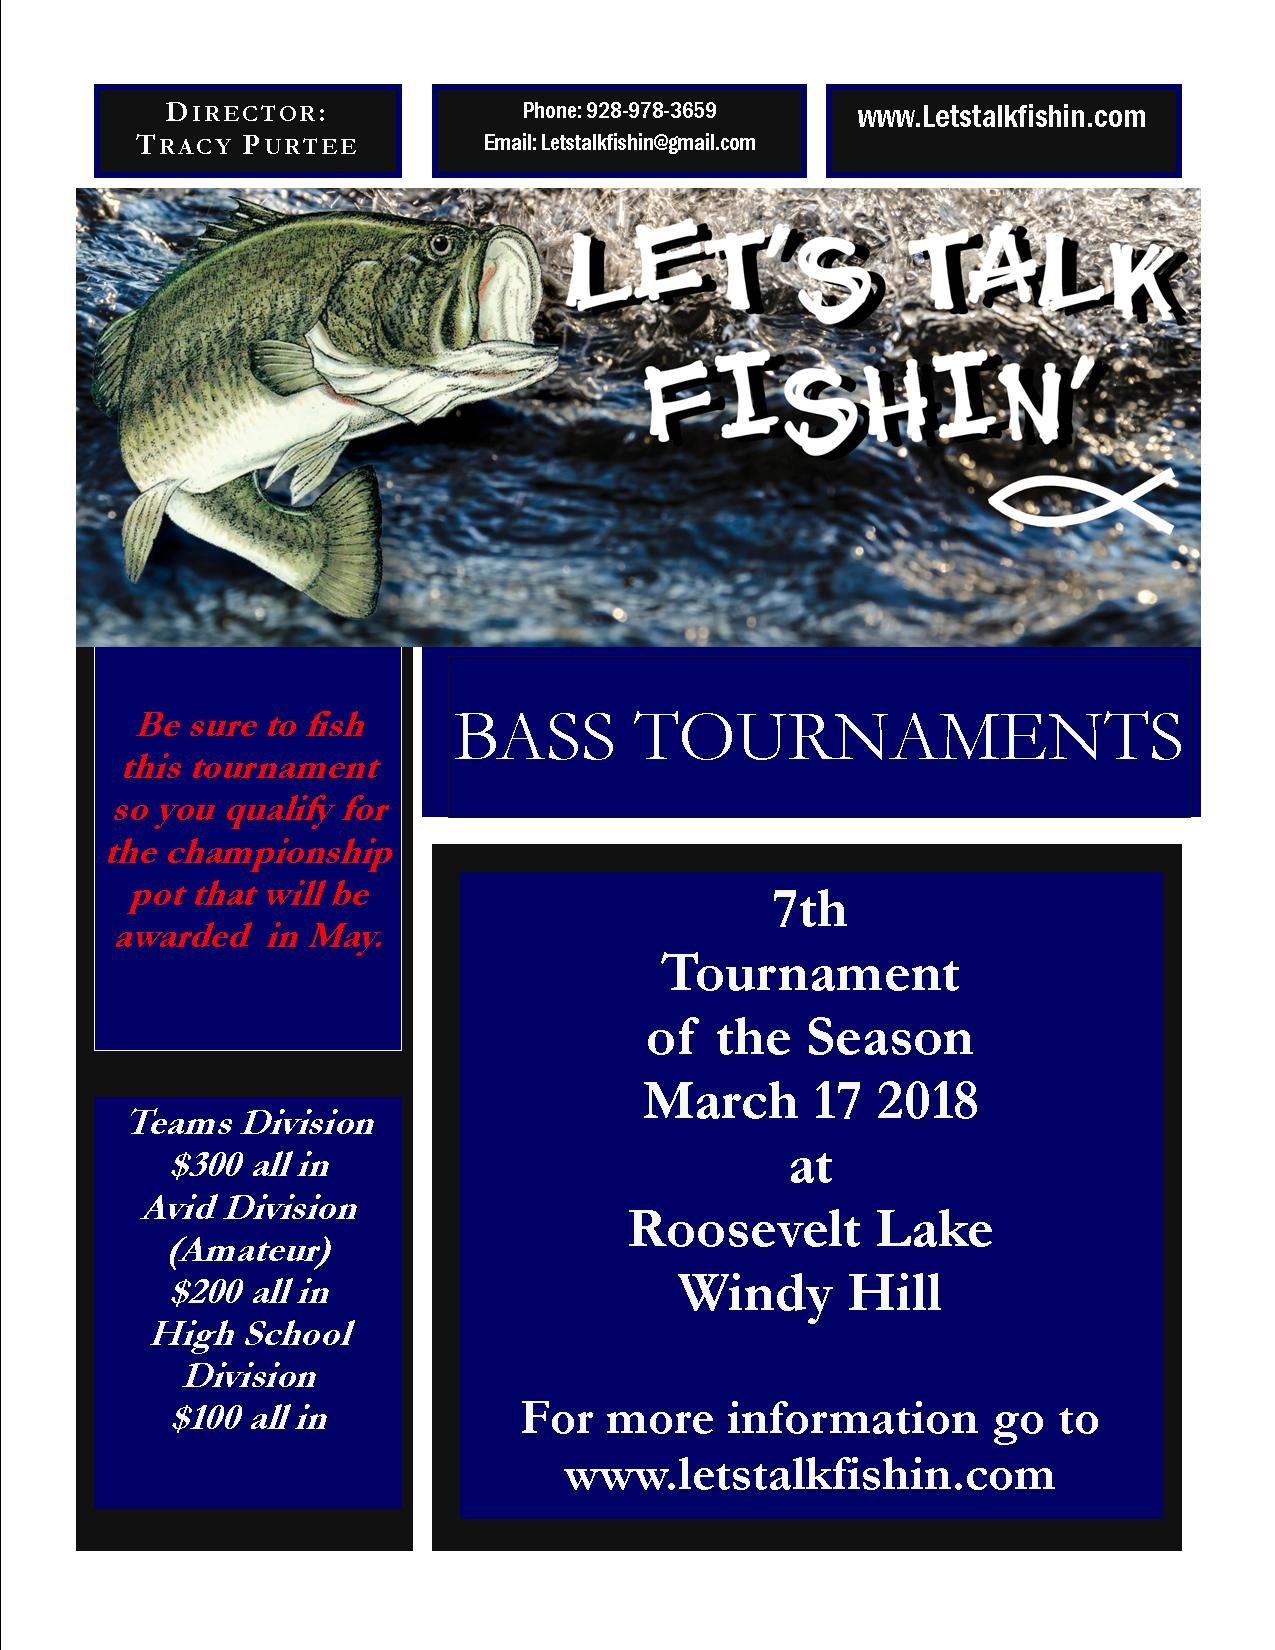 Click image for larger version  Name:7th Tournament.jpg Views:1107 Size:283.6 KB ID:96826